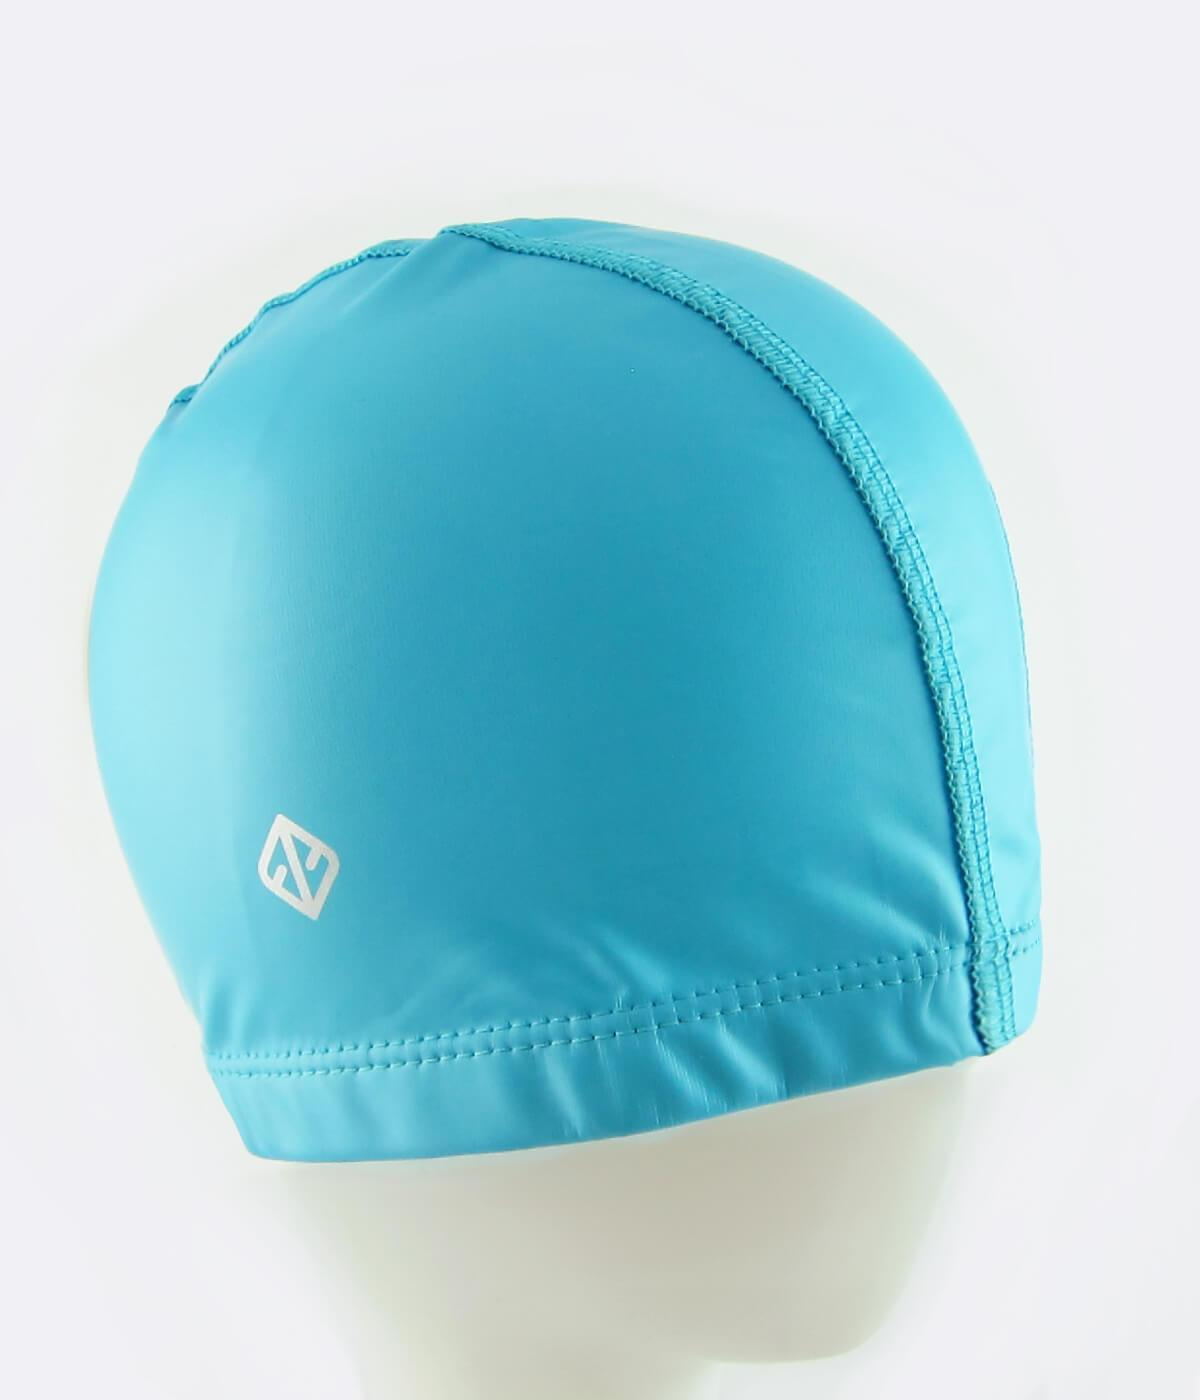 FUNFIT PU Coated Swimming Cap in Light Blue